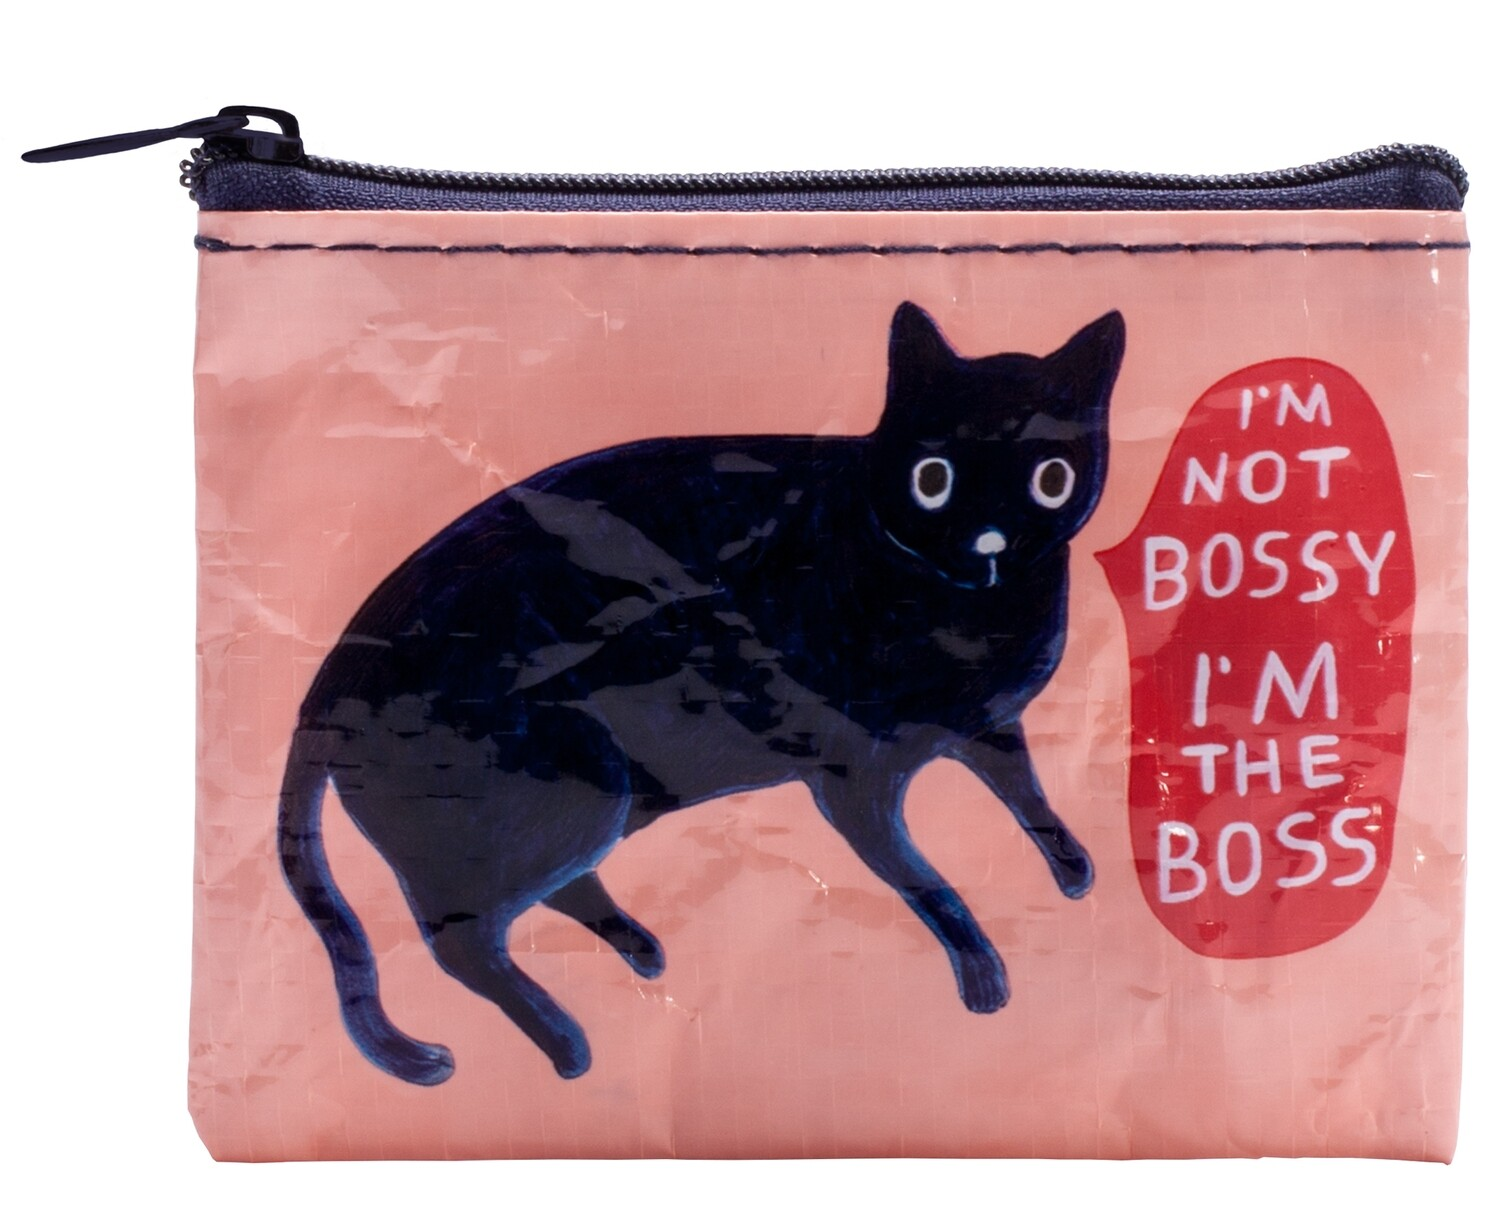 I'm Not Bossy I'm the Boss coin purse